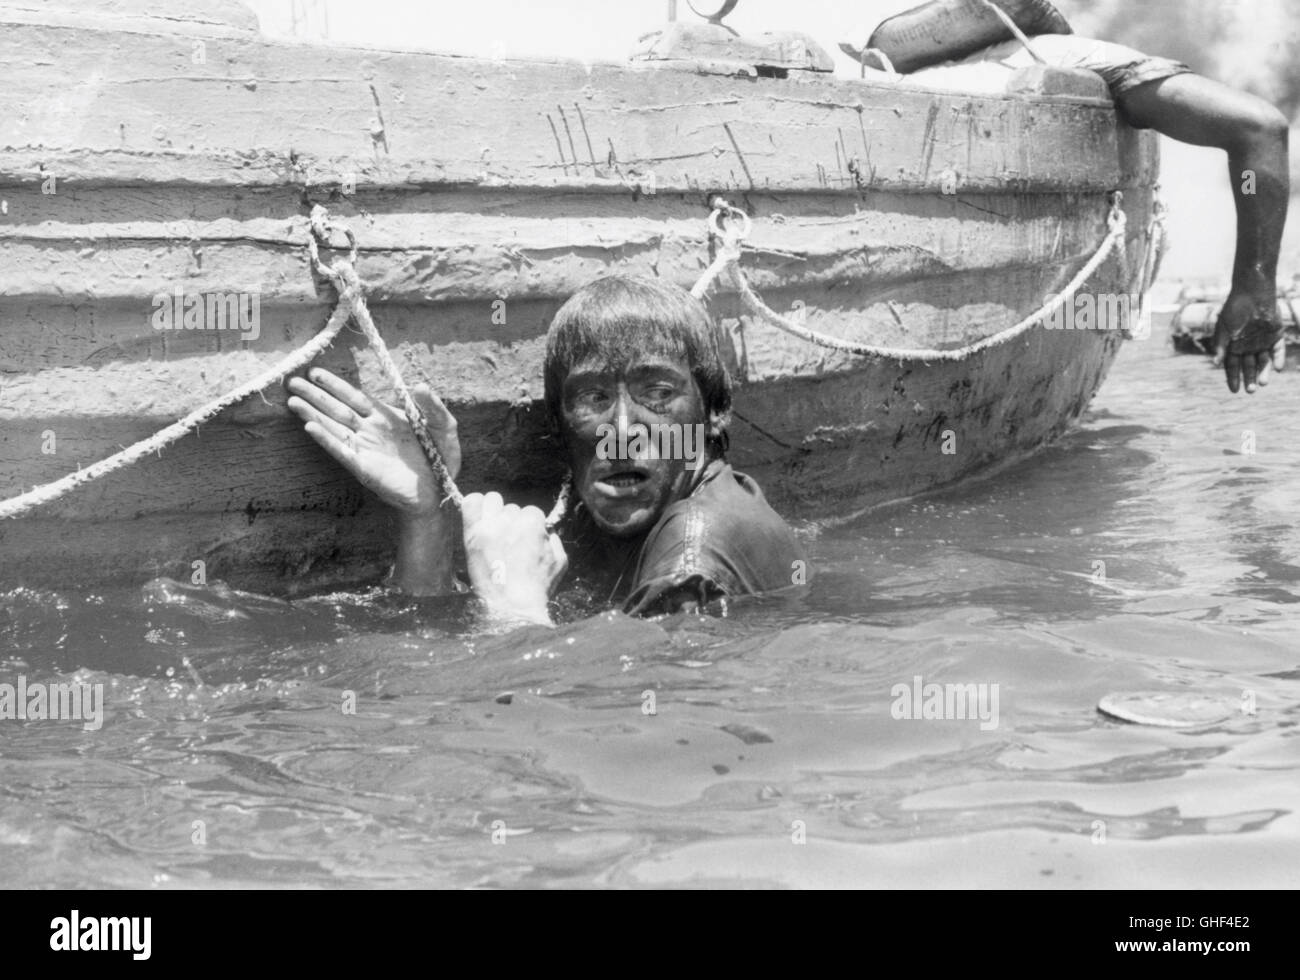 MURPHY'S WAR UK/USA 1971 Peter Yates Murphy (PETER O'TOOLE) tries to scramble aboard a lifeboat after the - Stock Image